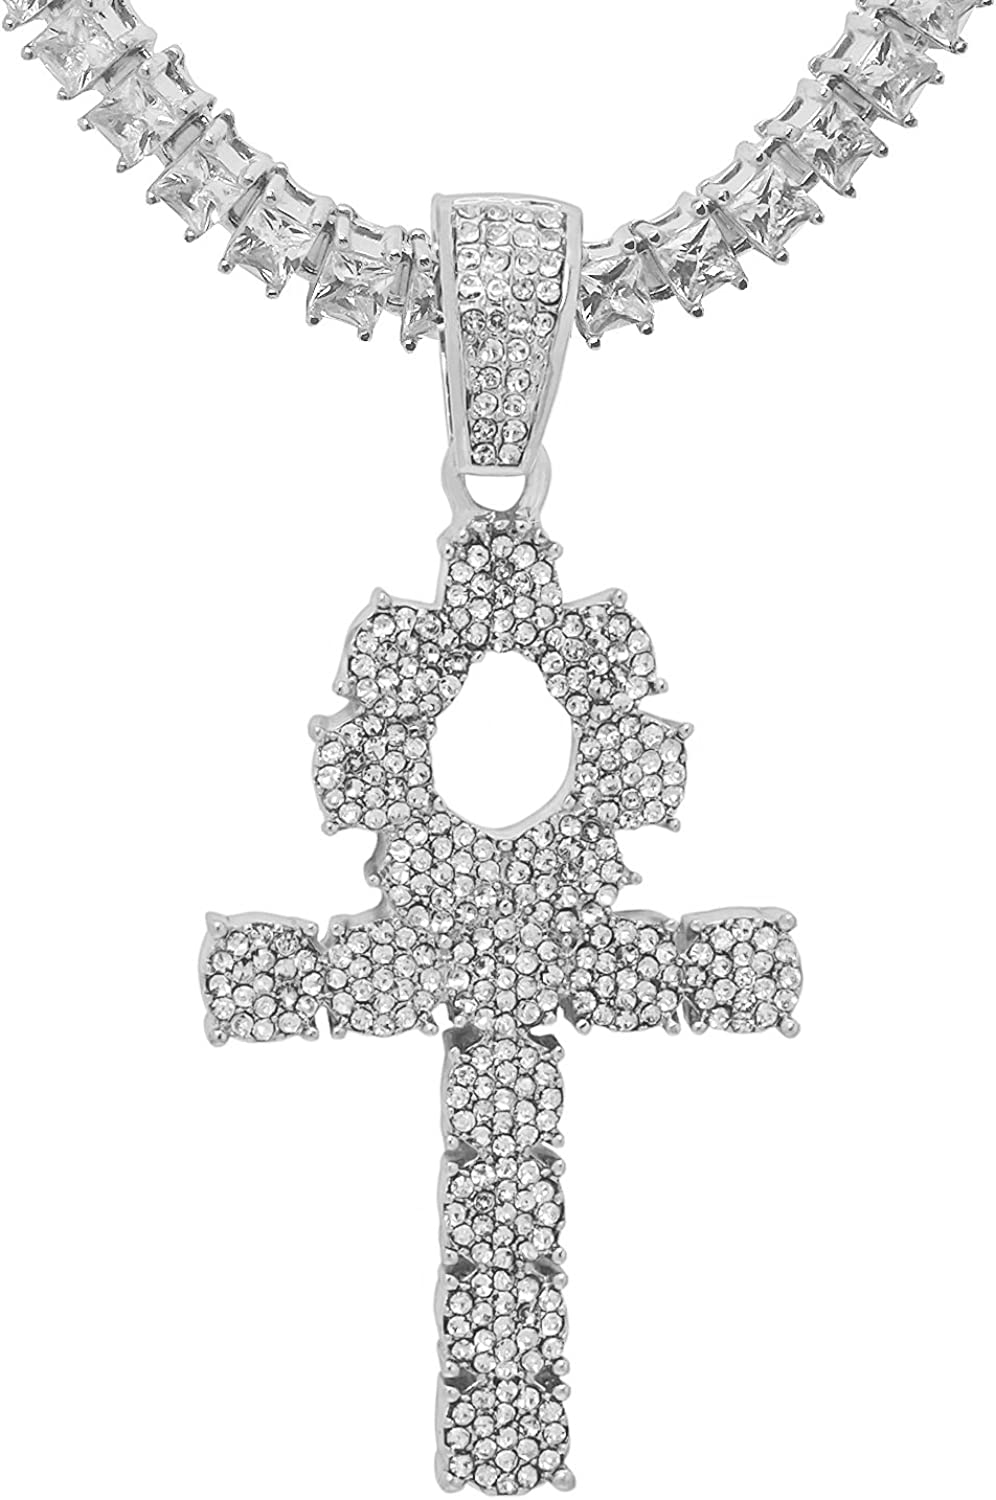 White Gold-Tone Iced Out Hip Hop Bling Symbol Of Life Ankh Cross Pendant 1 Row Square Cubic Zirconia Princess Cut Stones Tennis Chain 20 Necklace Choker Chain